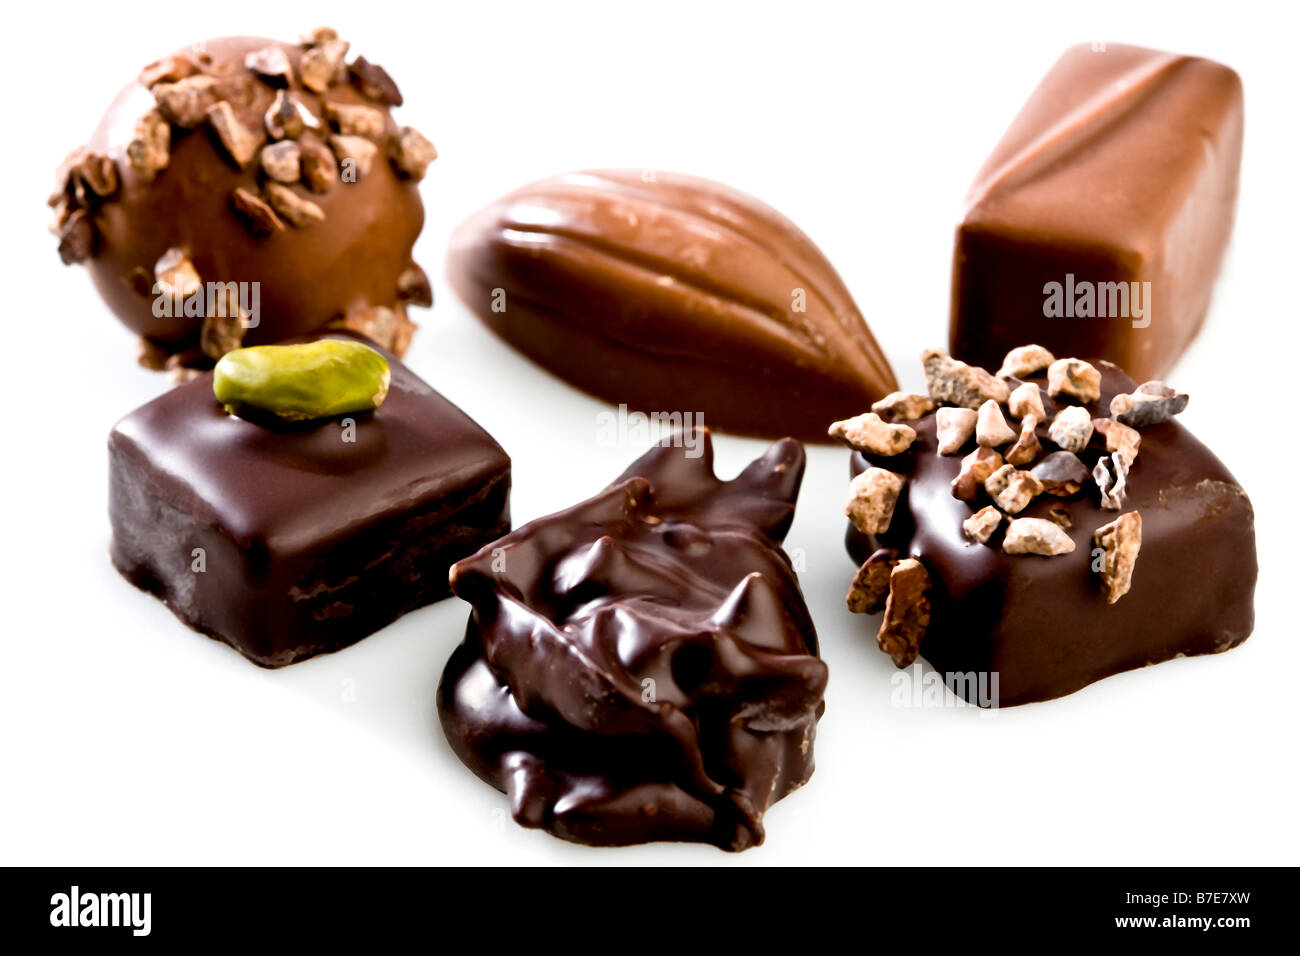 Handmade chocolate pieces - Stock Image